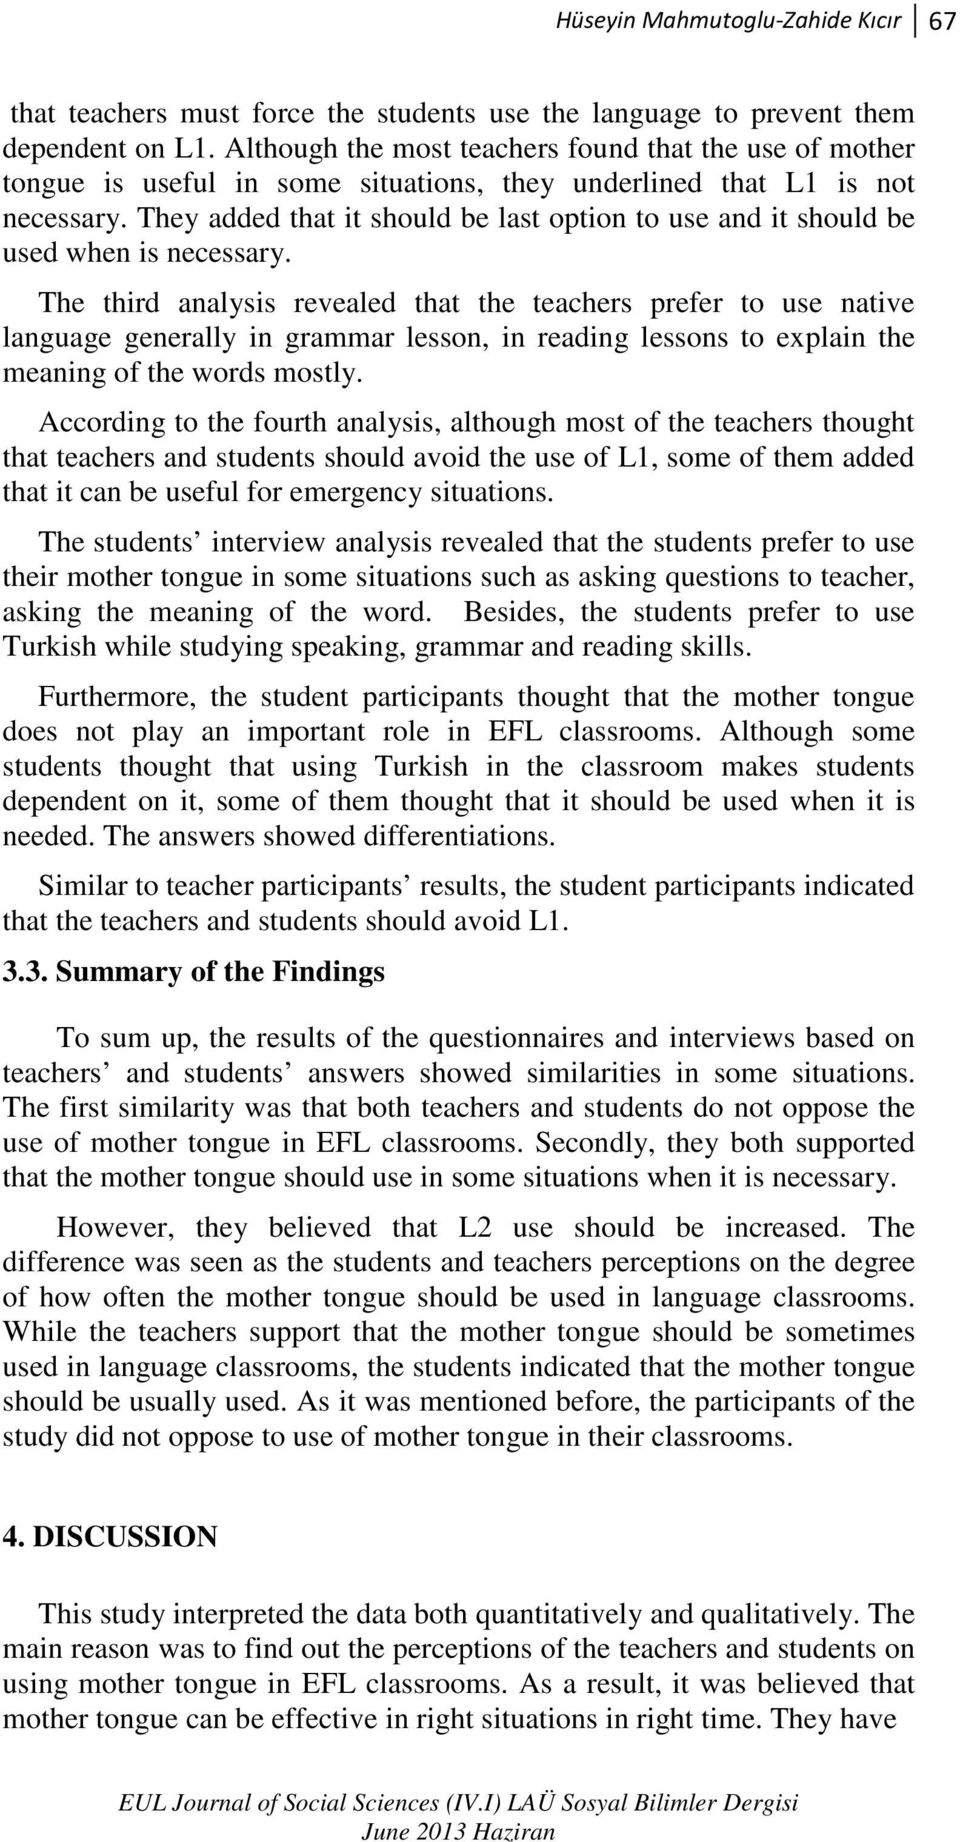 the use of mother tongue in efl classrooms pdf they added that it should be last option to use and it should be used when